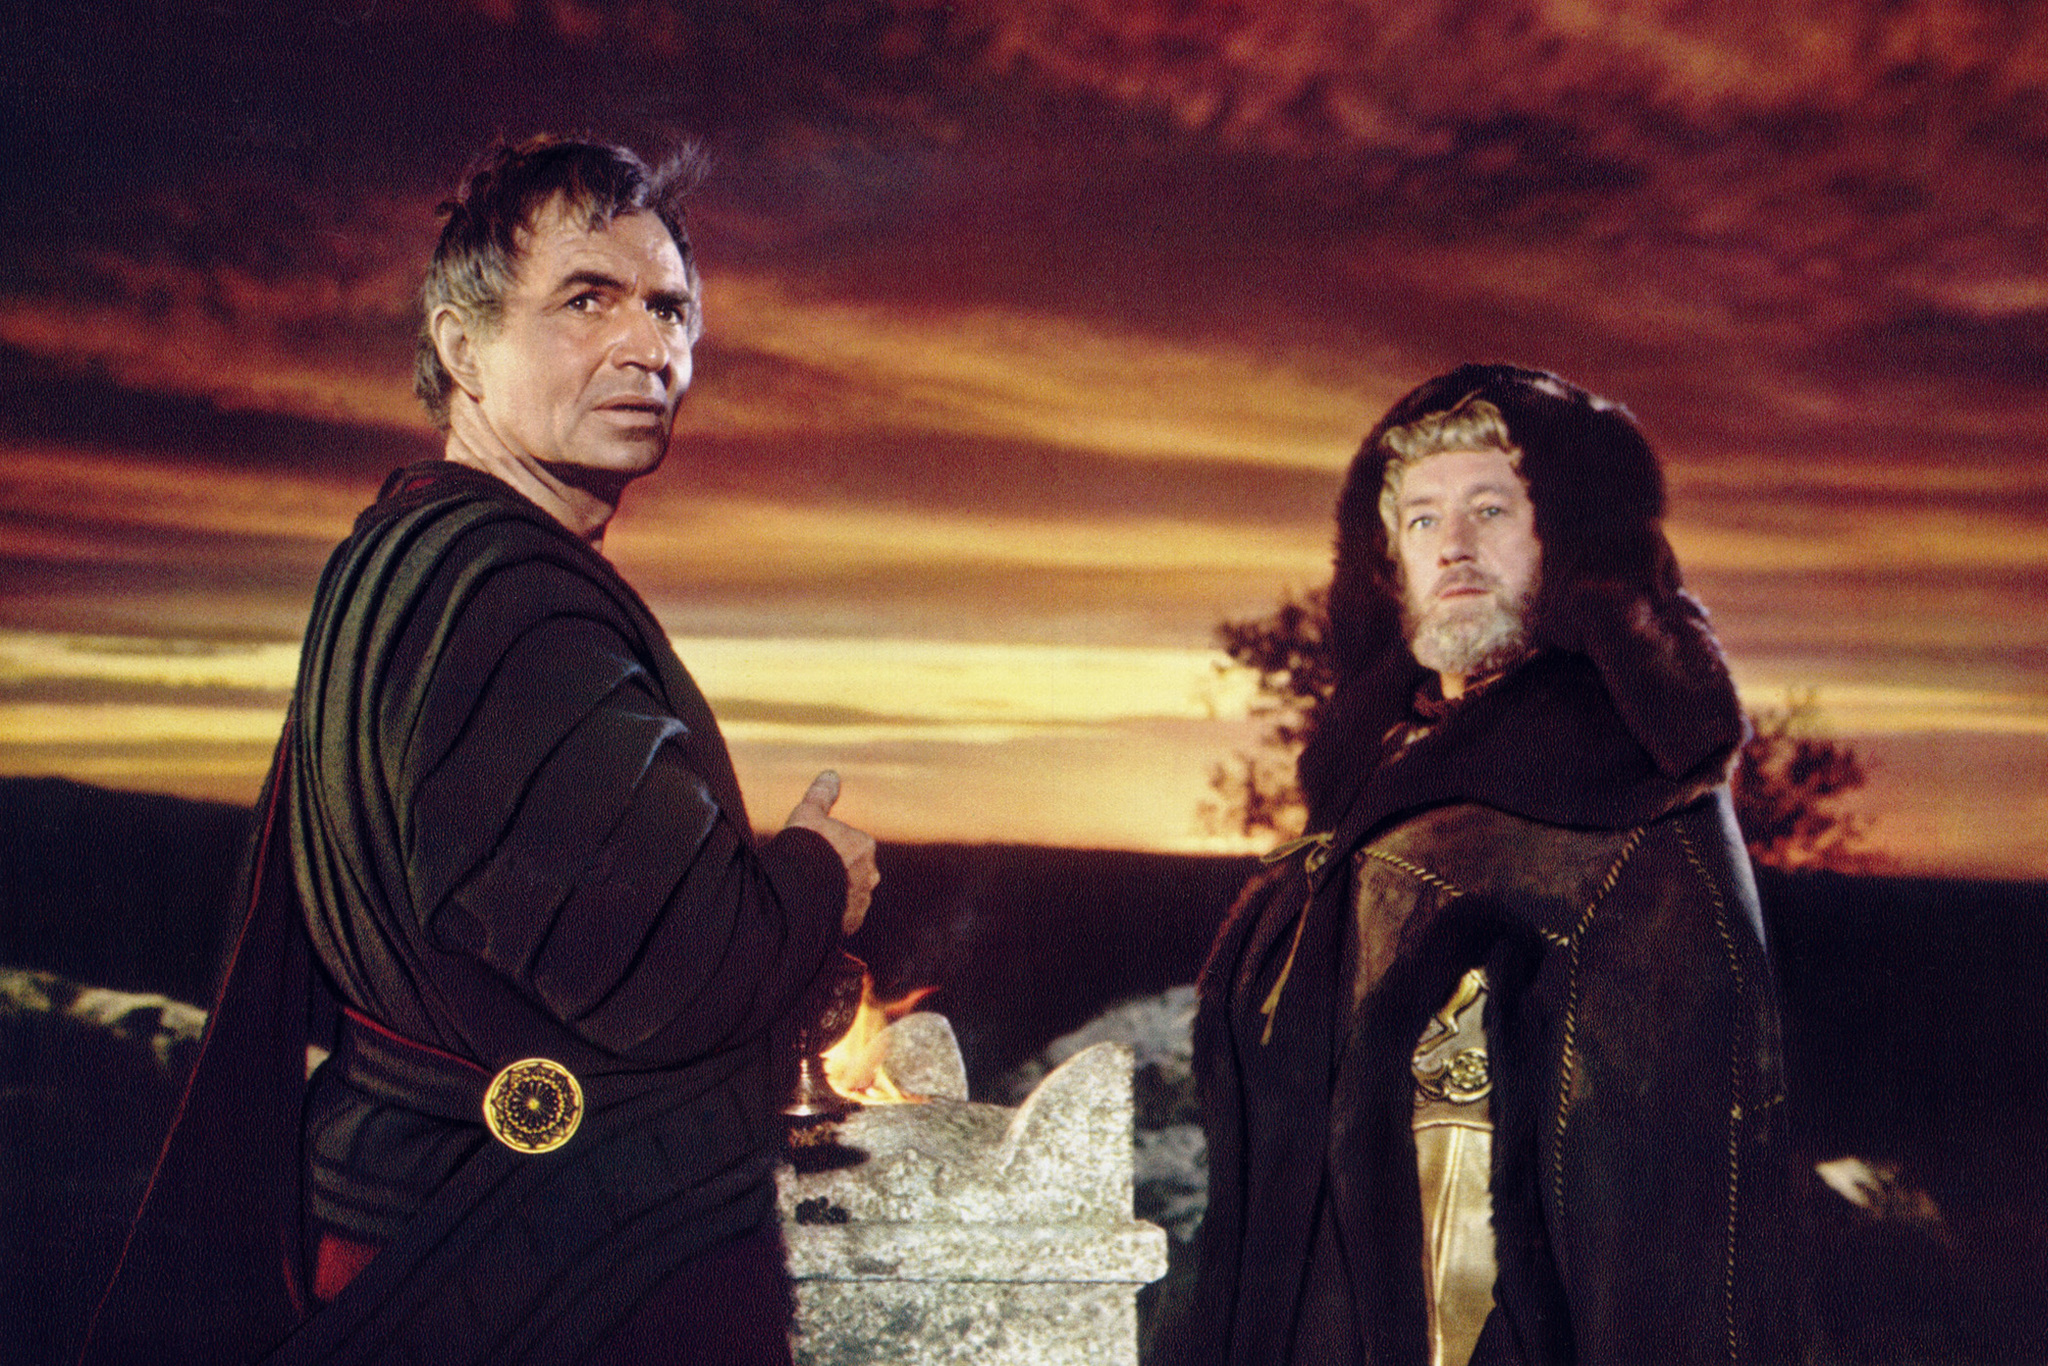 Still of Alec Guinness and James Mason in The Fall of the Roman Empire (1964)